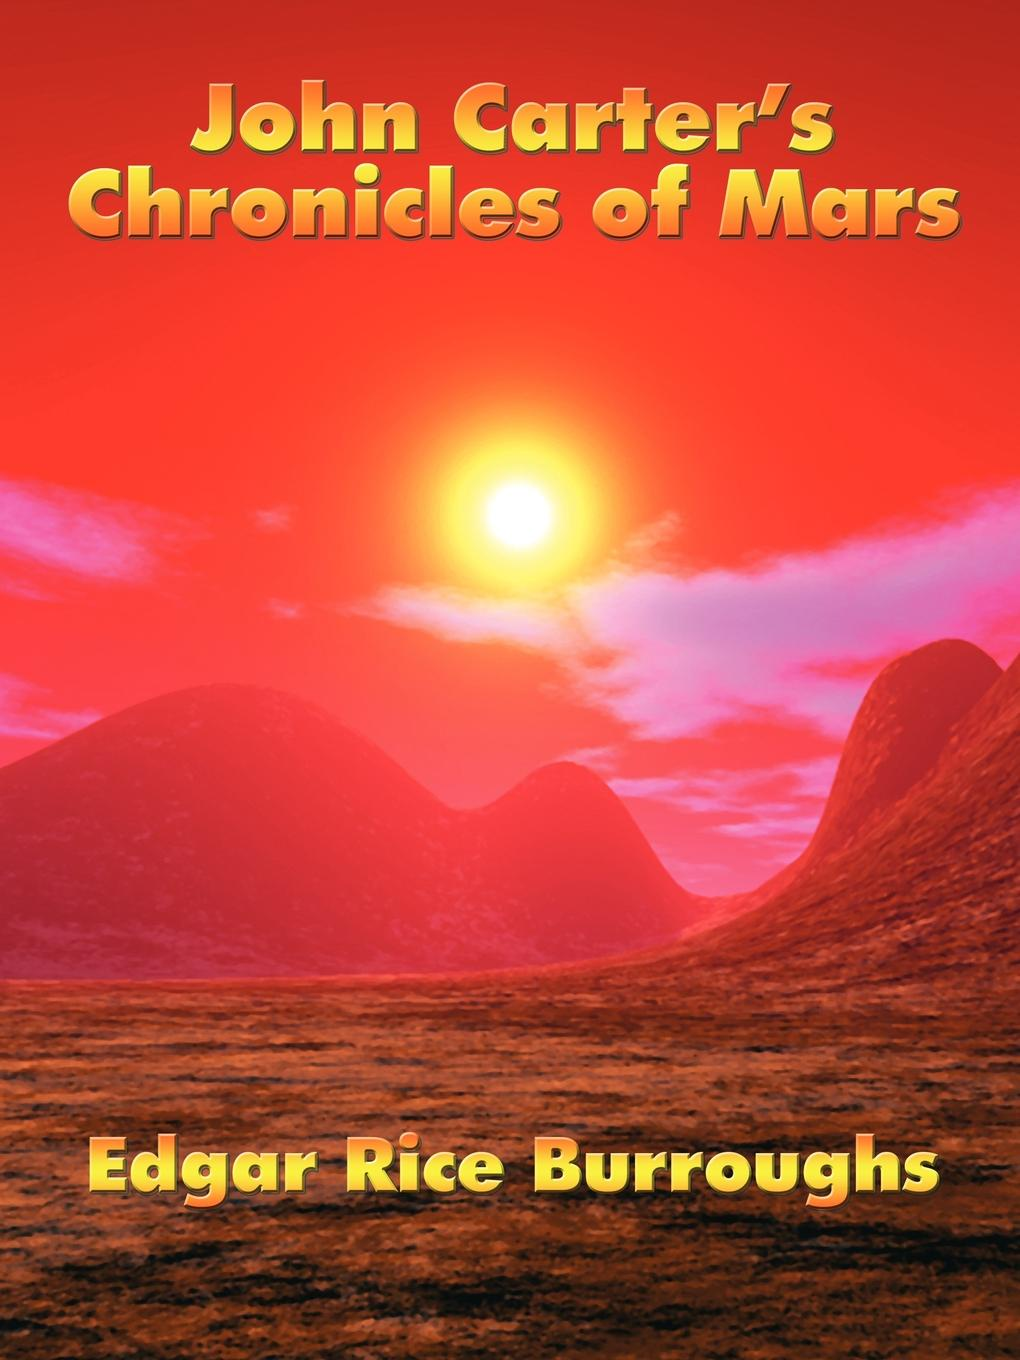 Edgar Rice Burroughs John Carter's Chronicles of Mars edgar rice burroughs the war chief